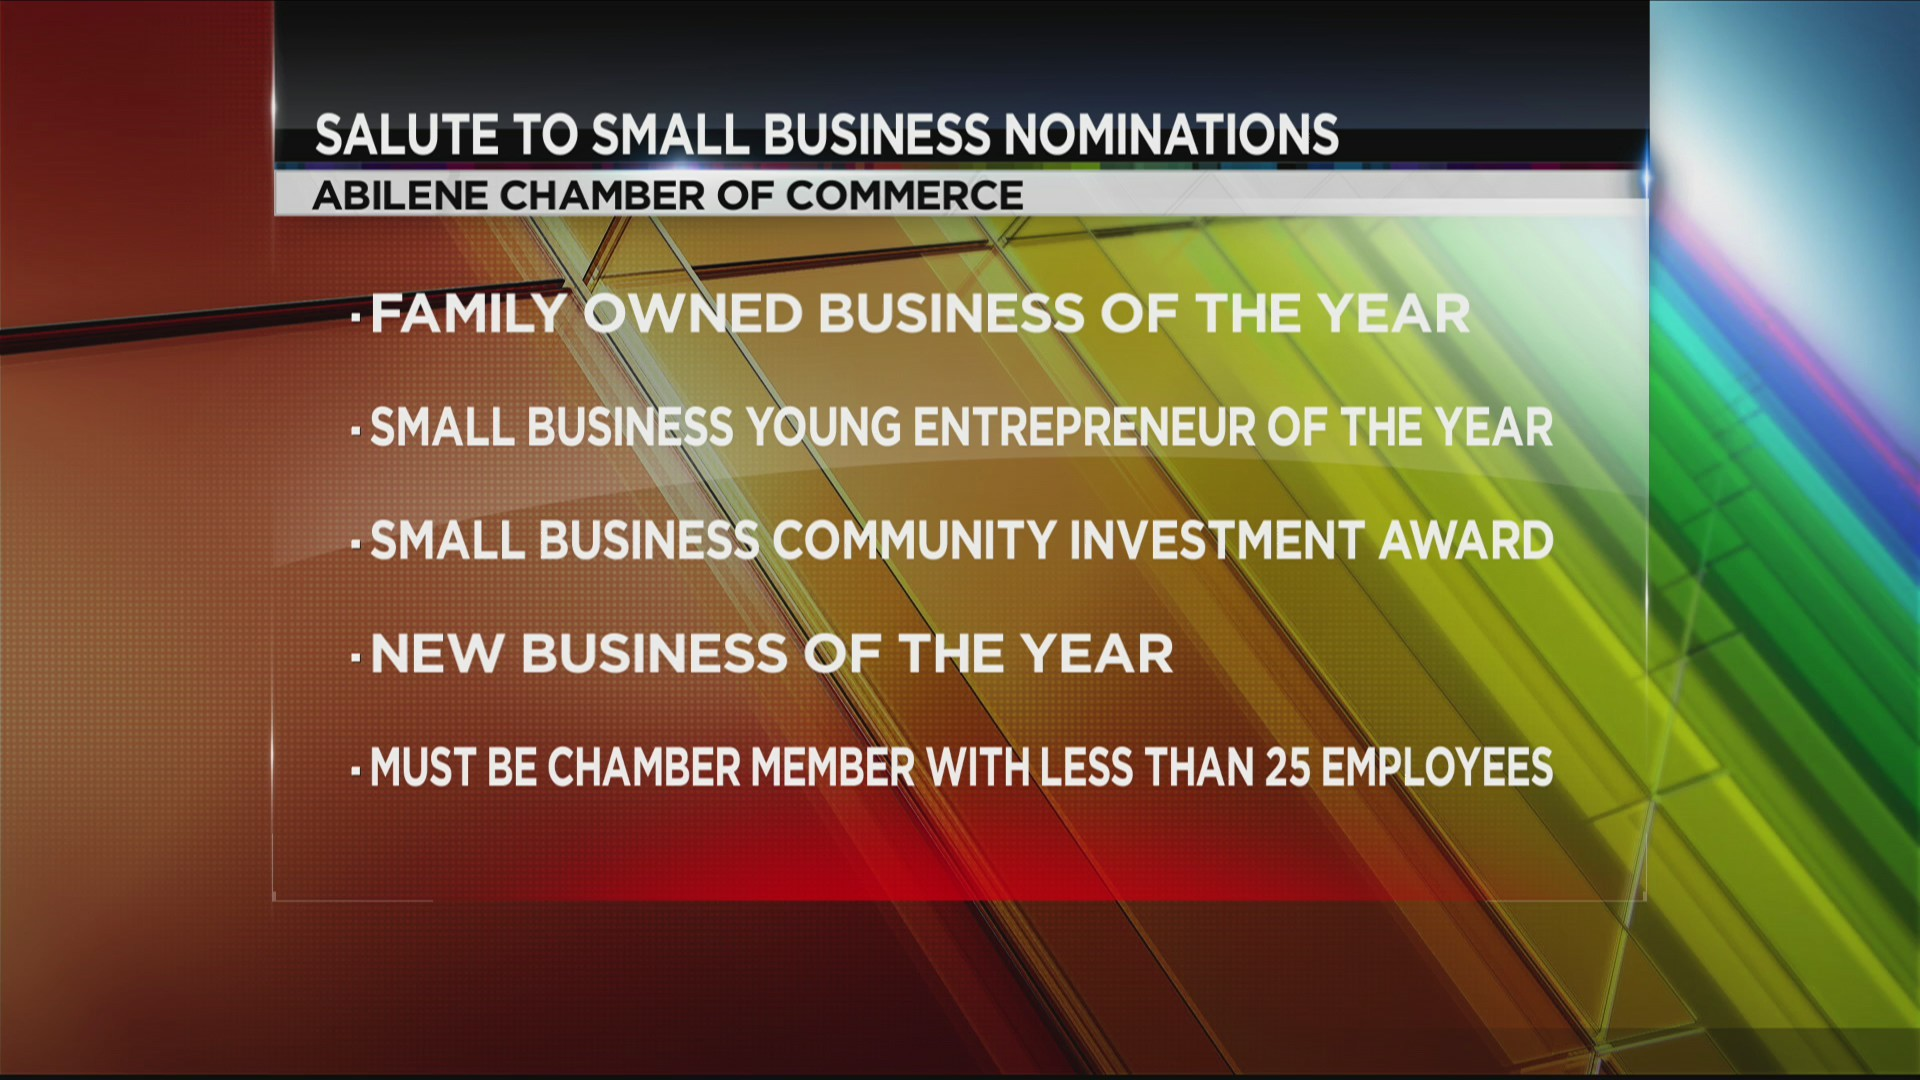 Small Business Awards nominations due to Abilene Chamber of Commerce Friday